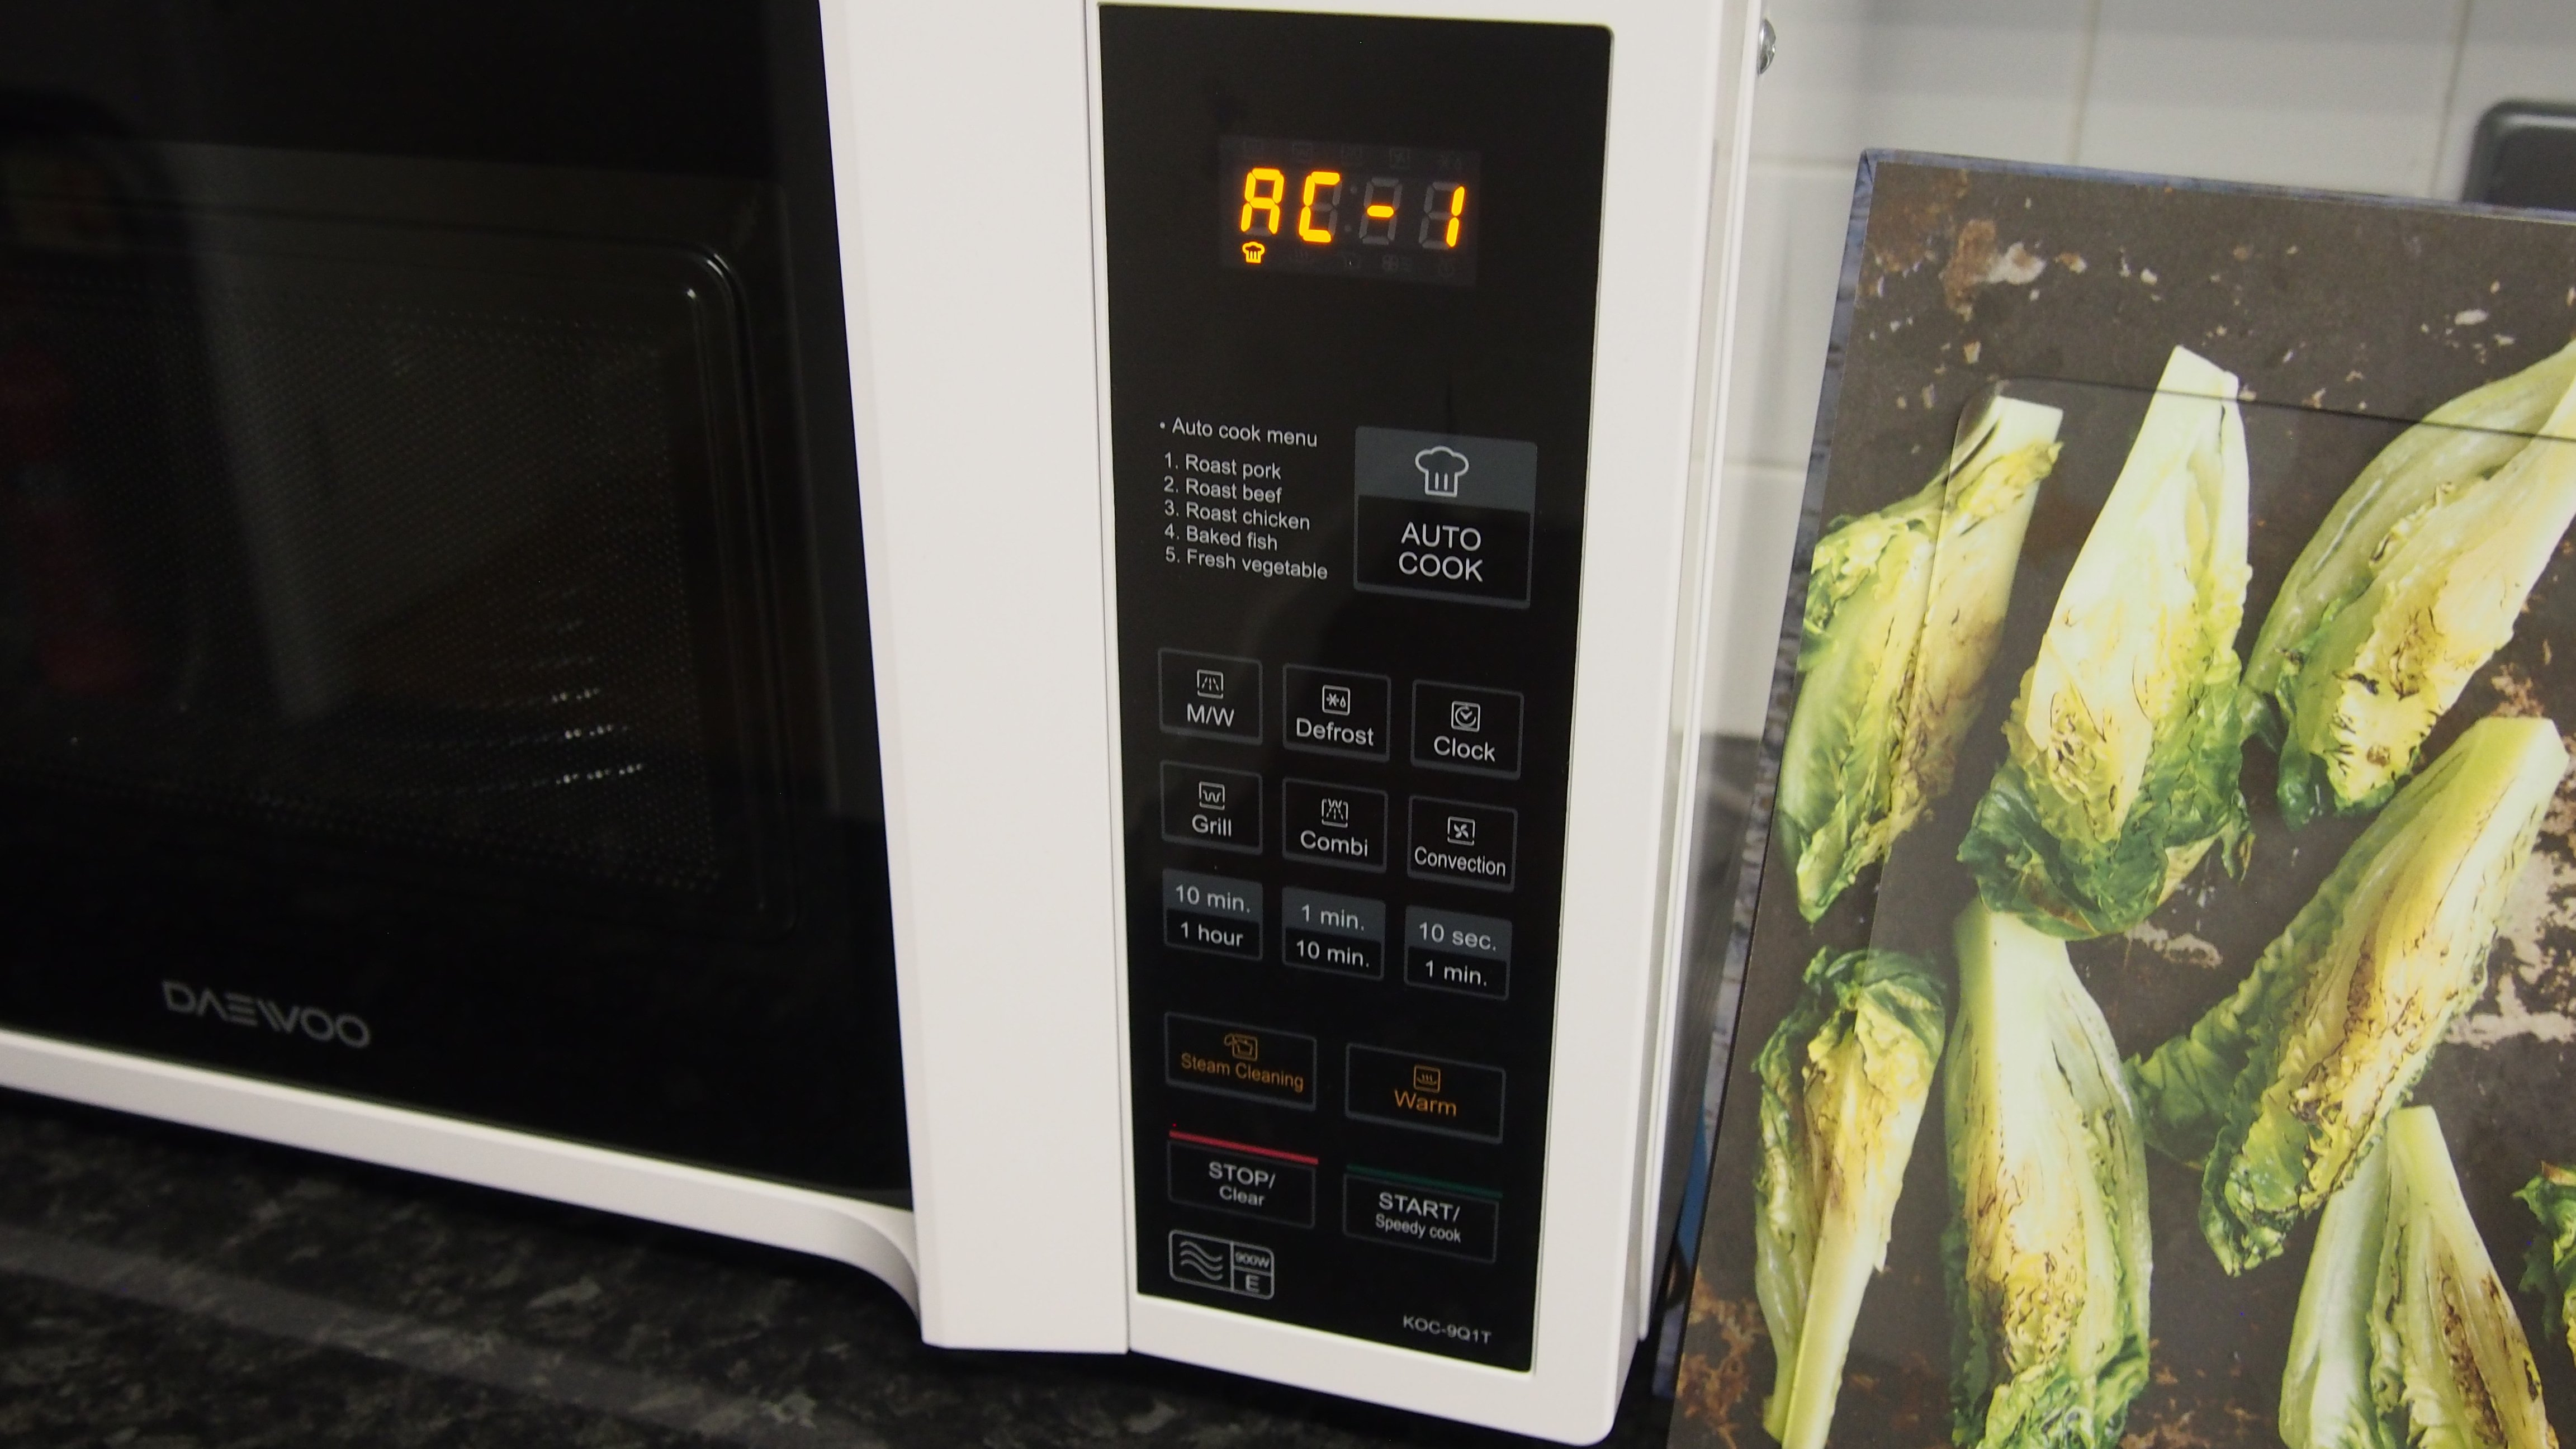 Daewoo KOC9Q1T Combination Microwave Oven review | Expert Reviews